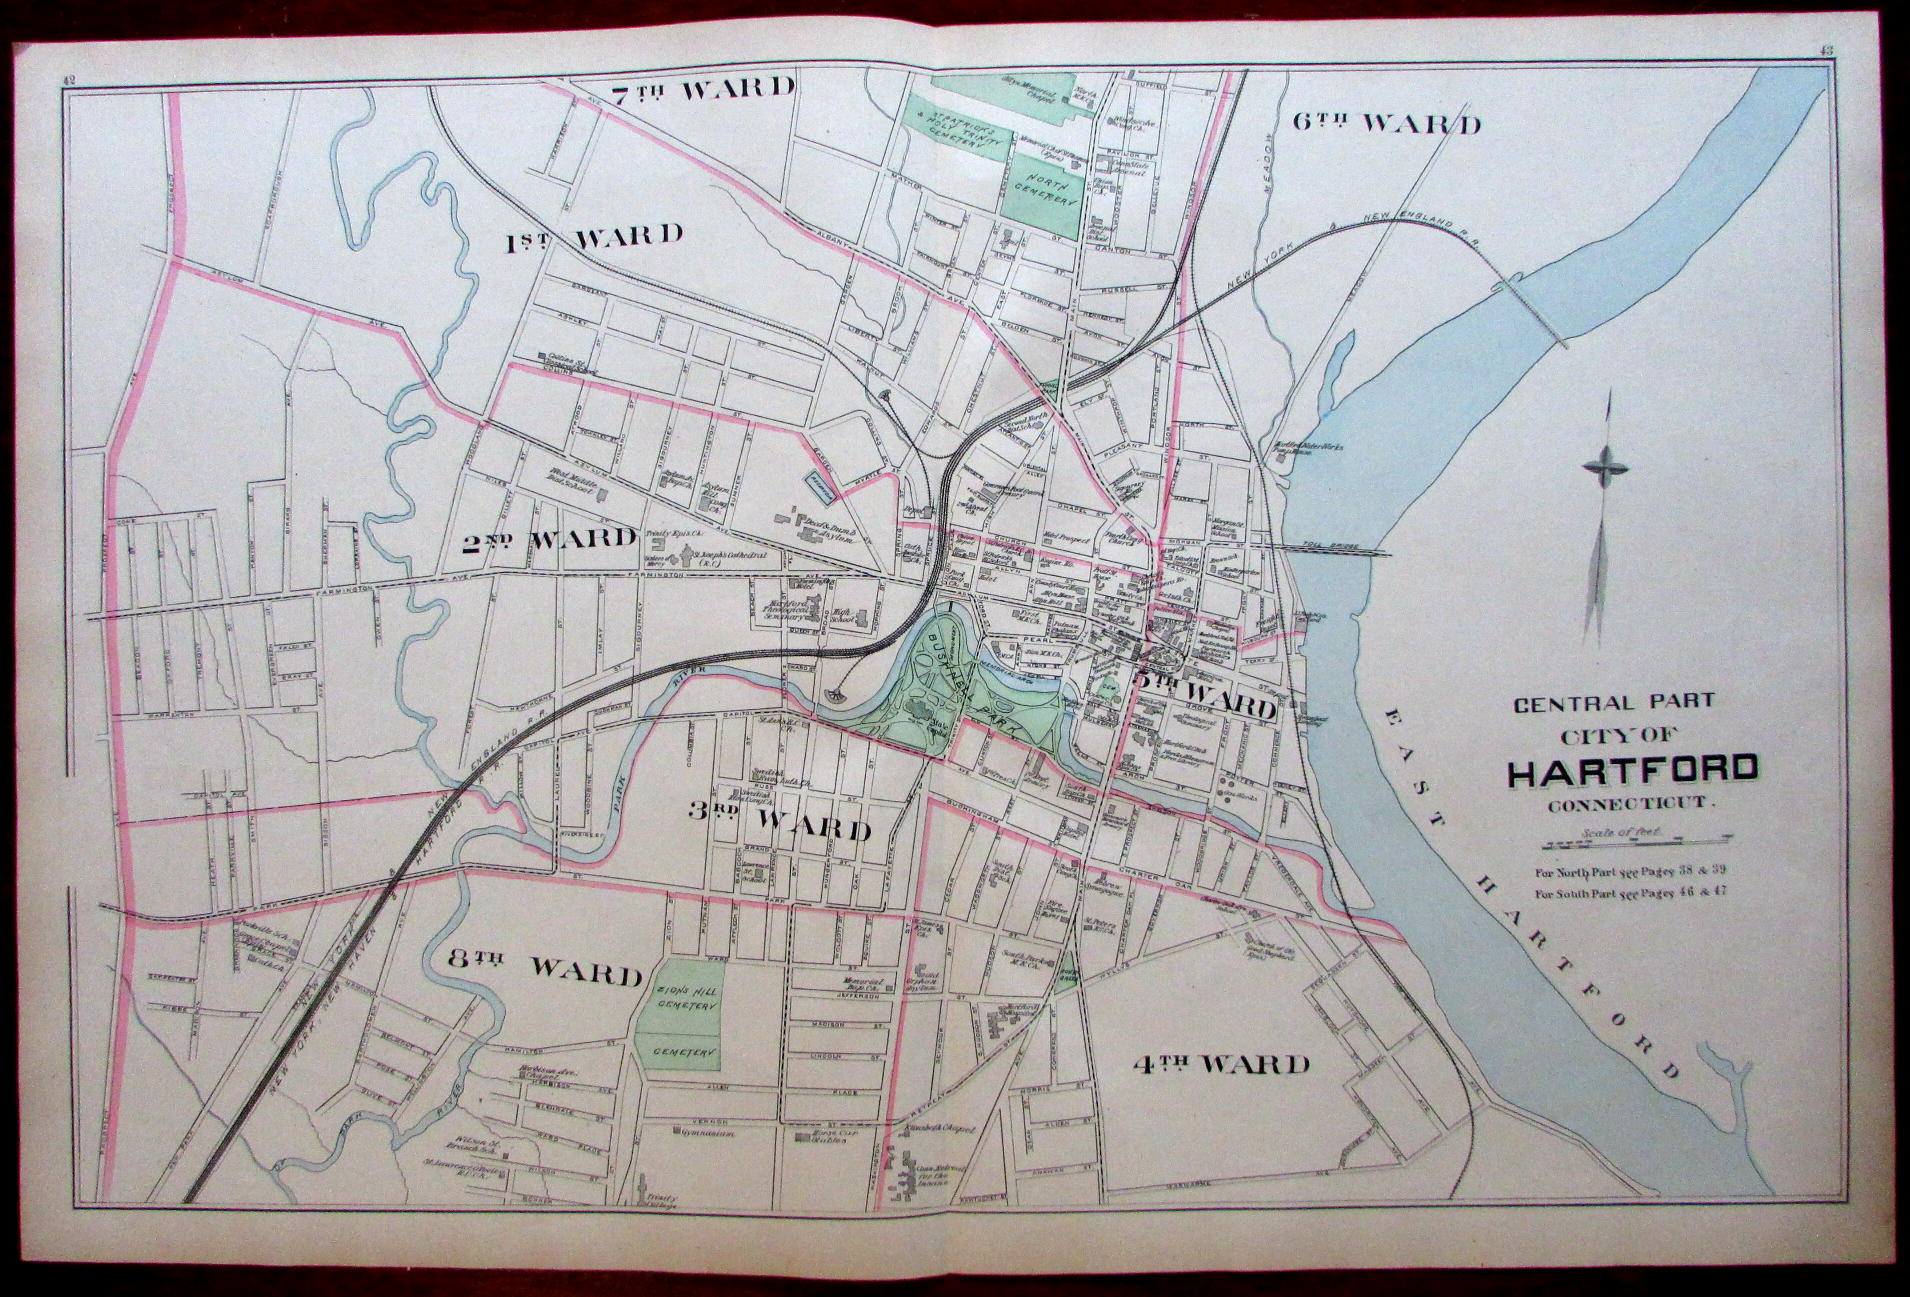 Hartford downtown center city plan 1893 Connecticut Hurd map ...